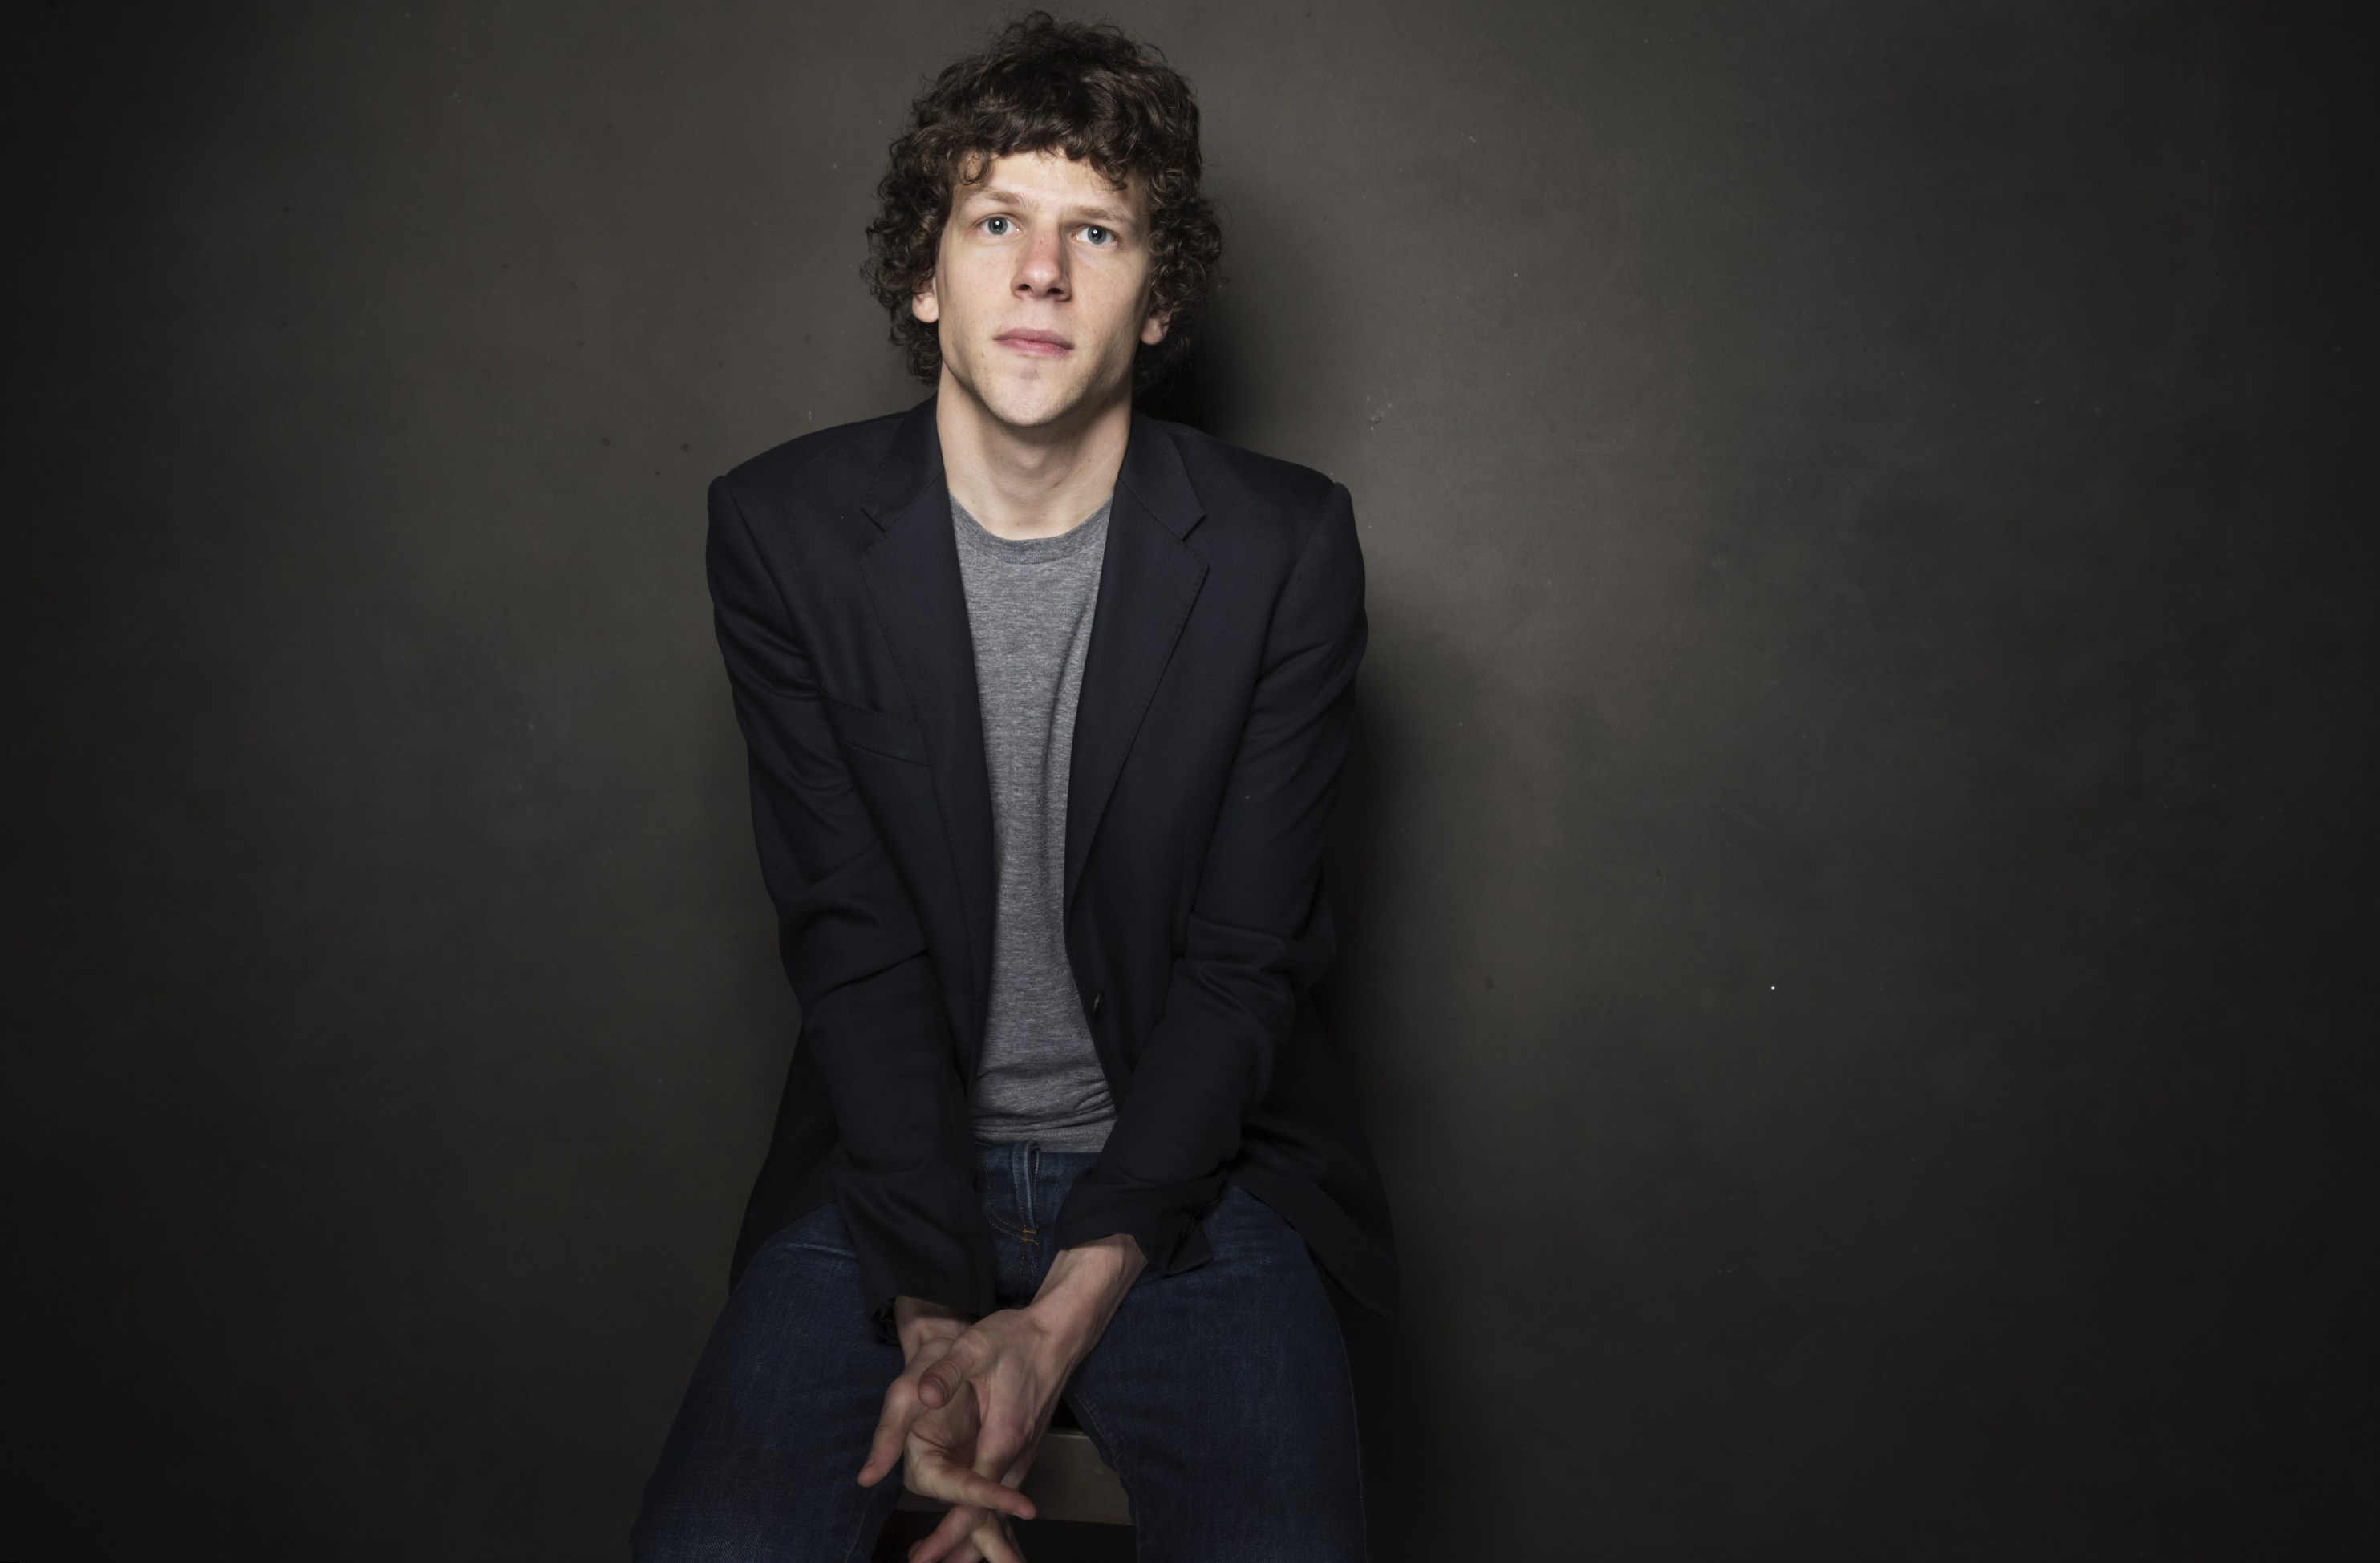 Jesse Eisenberg Best Movies and TV Shows. Find it out! Jesse Eisenberg